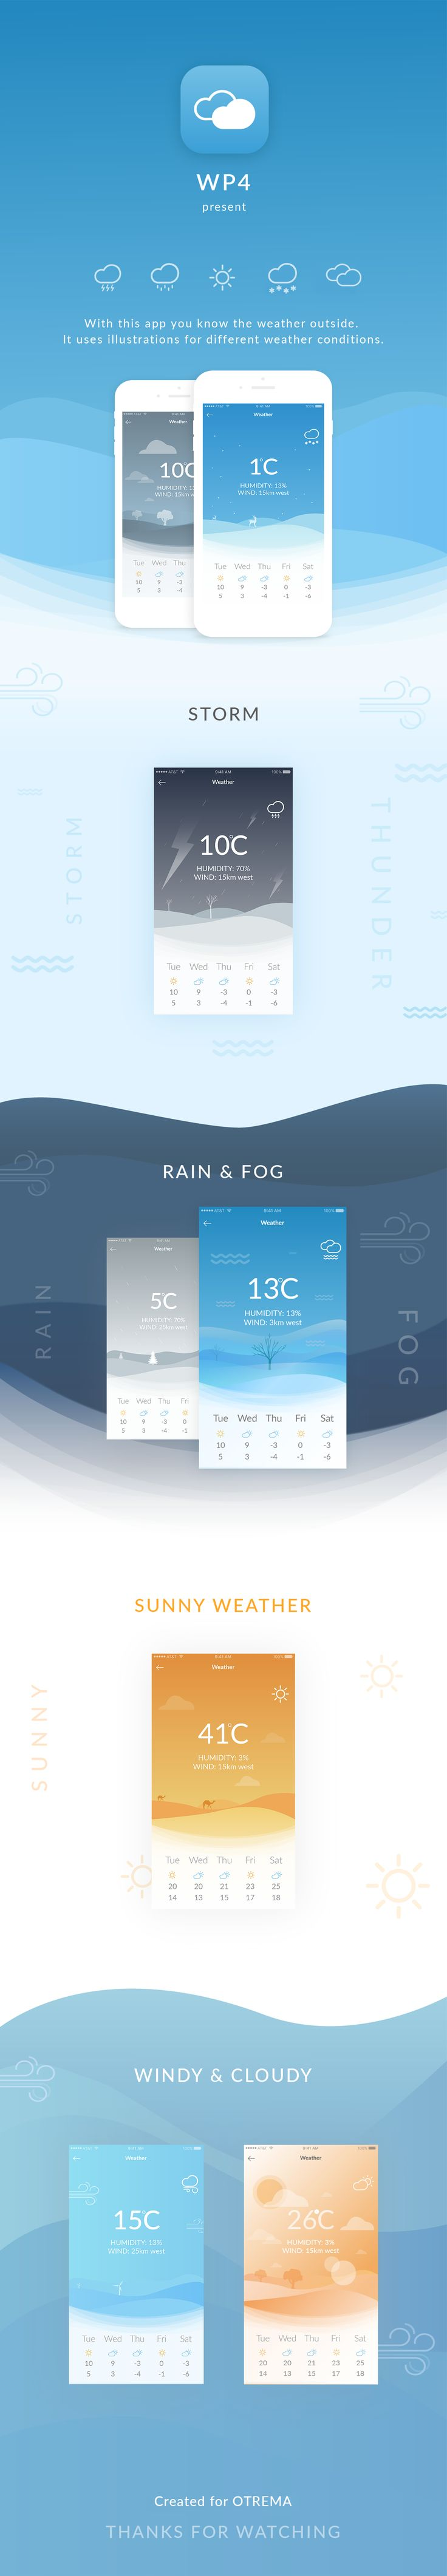 This application is for users who want to check on weather. It displays rainy, foggy, sunny, cloudy, stormy, or windy conditions in illustrations.